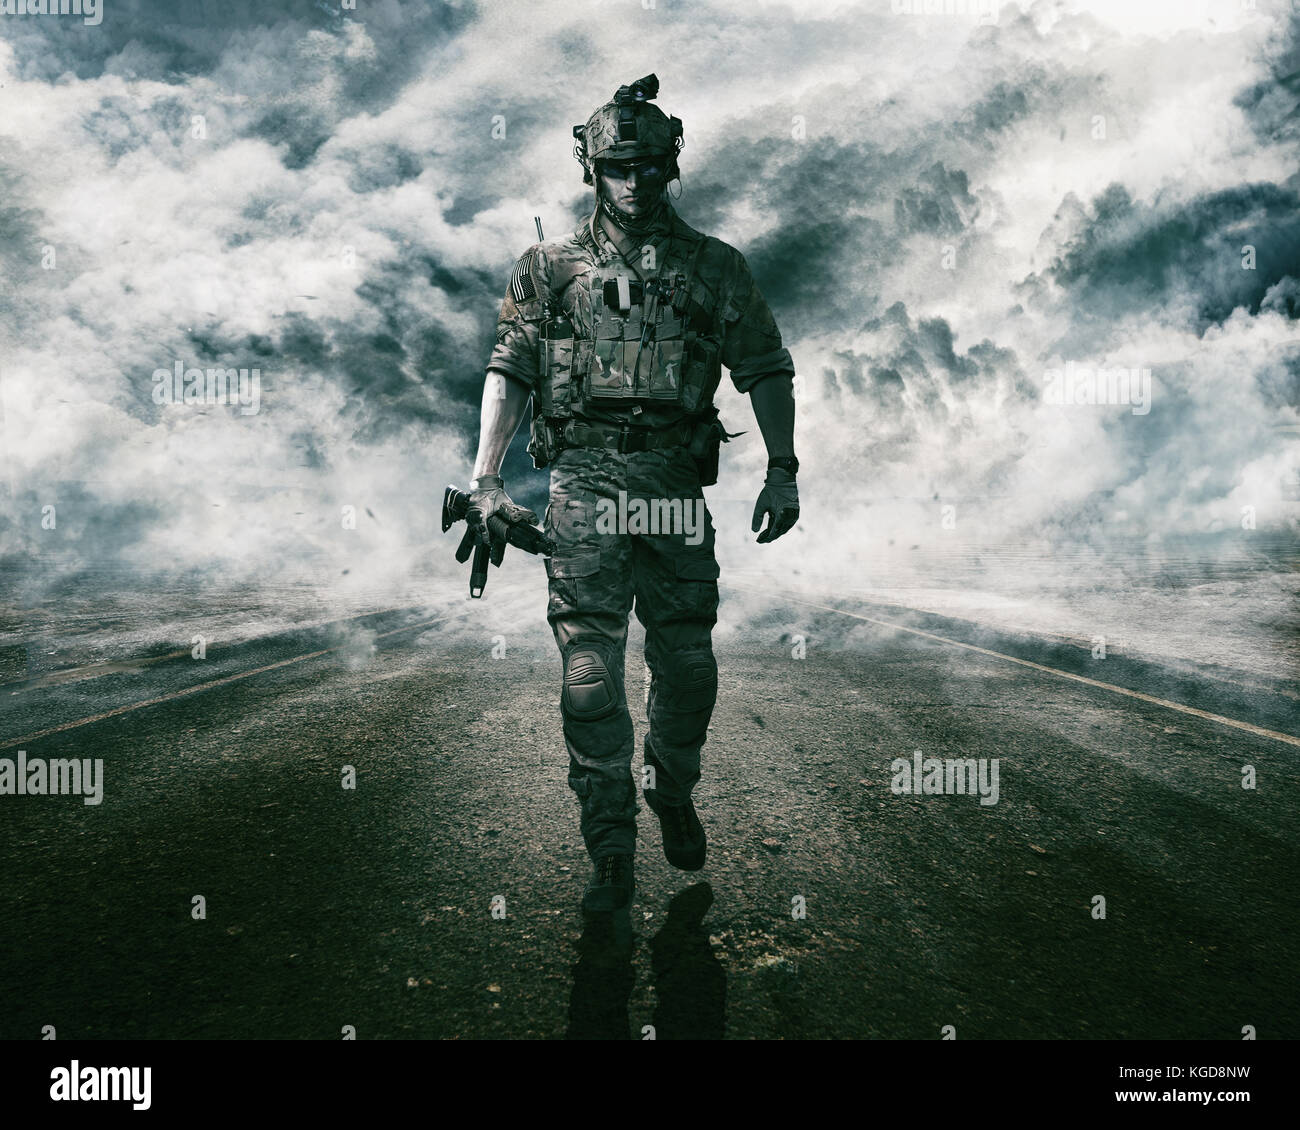 Army soldier on the road - Stock Image